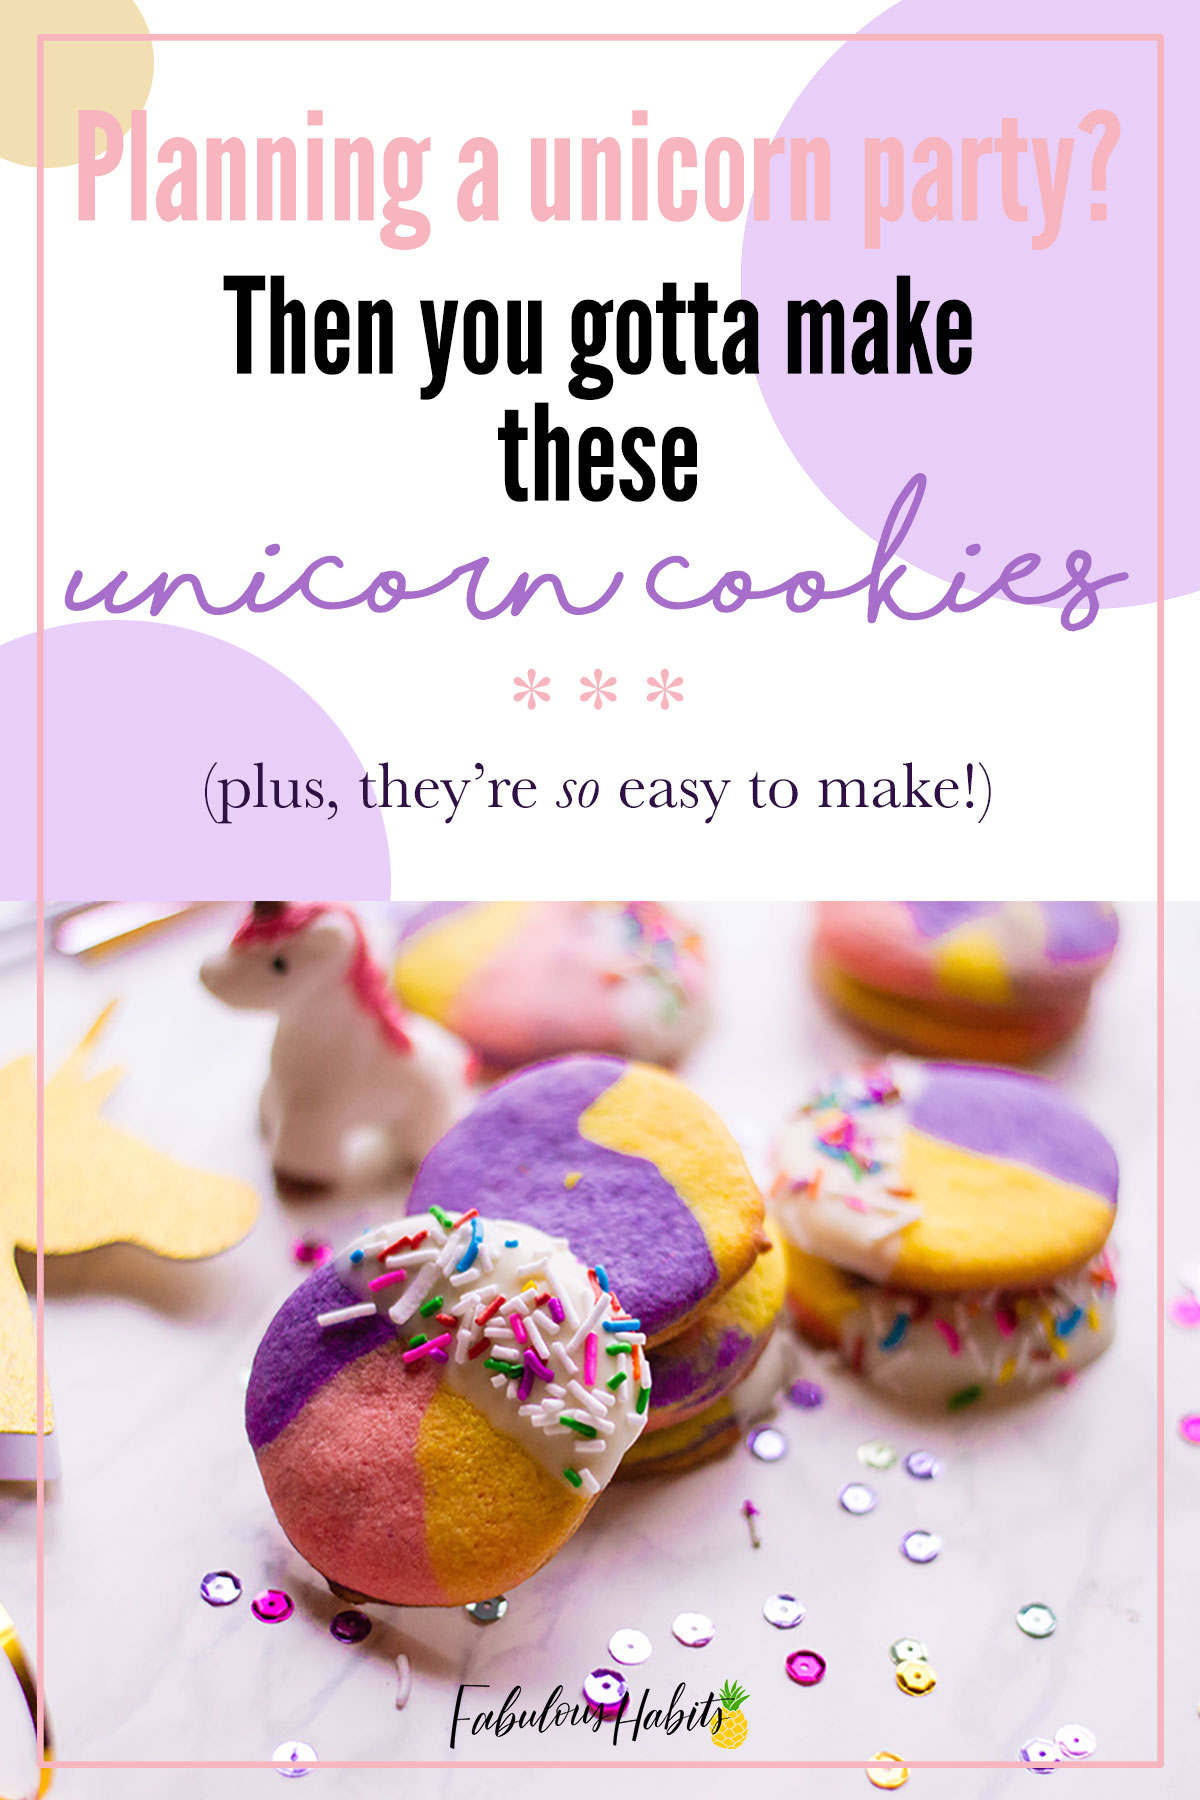 If you're planning a unicorn party, then these tri-colored unicorn cookies are something you'll have to make! So colorful and so sweet! #unicorncookies